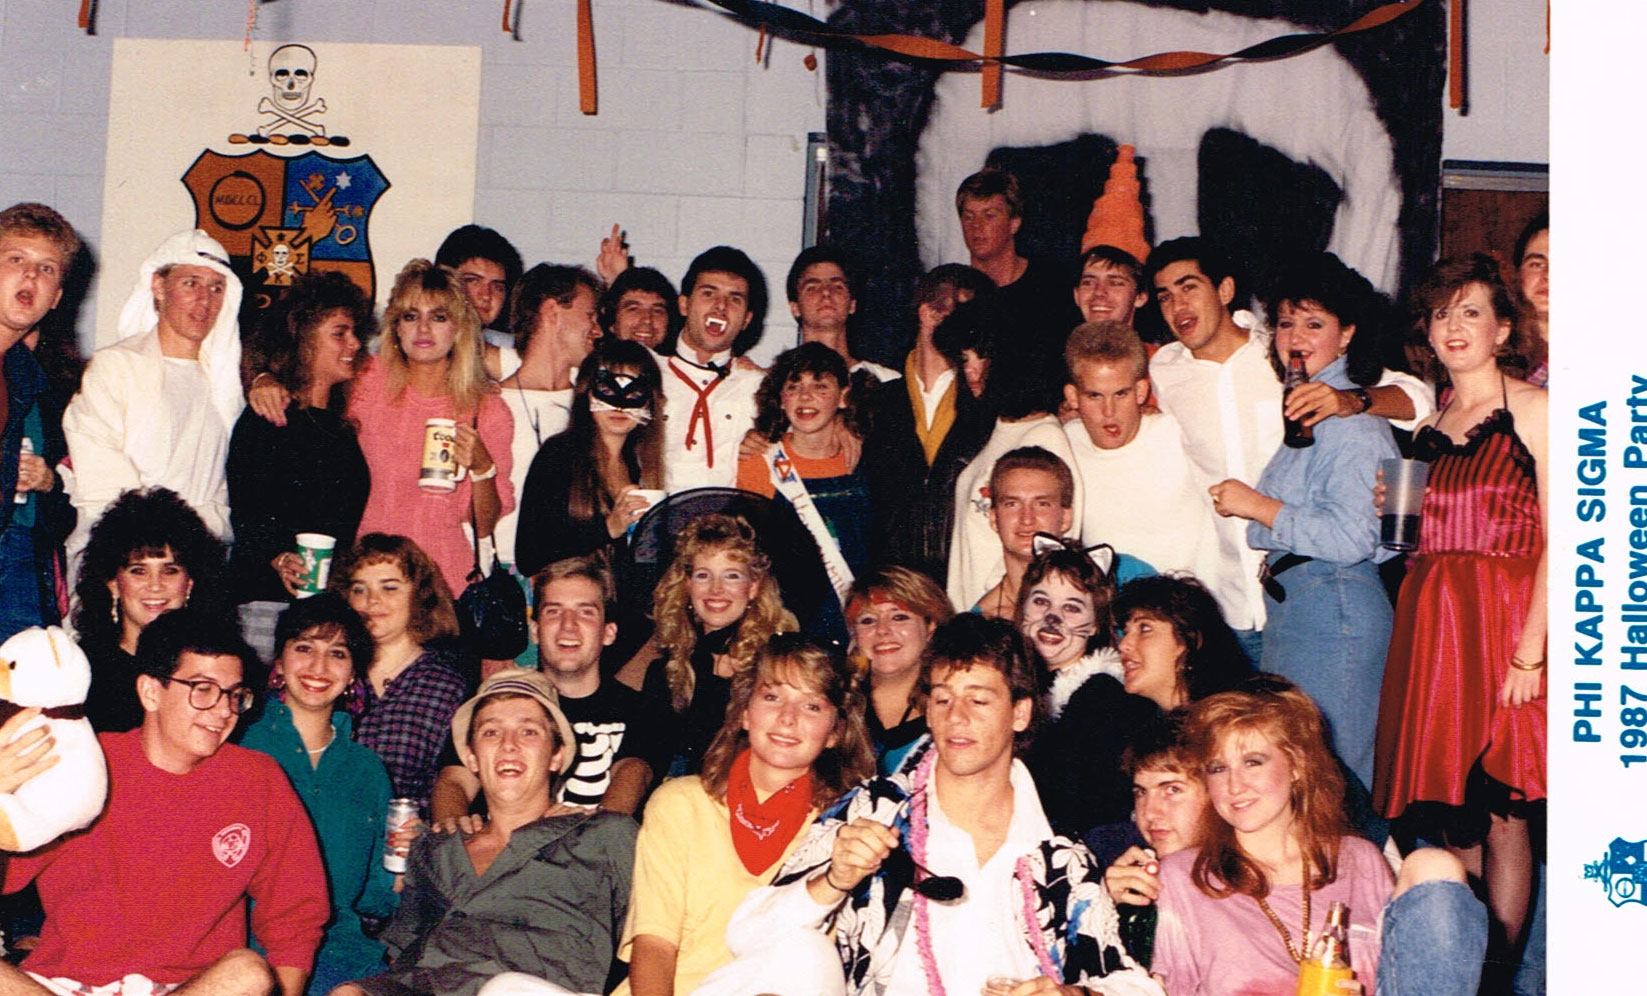 1987 Halloween Party